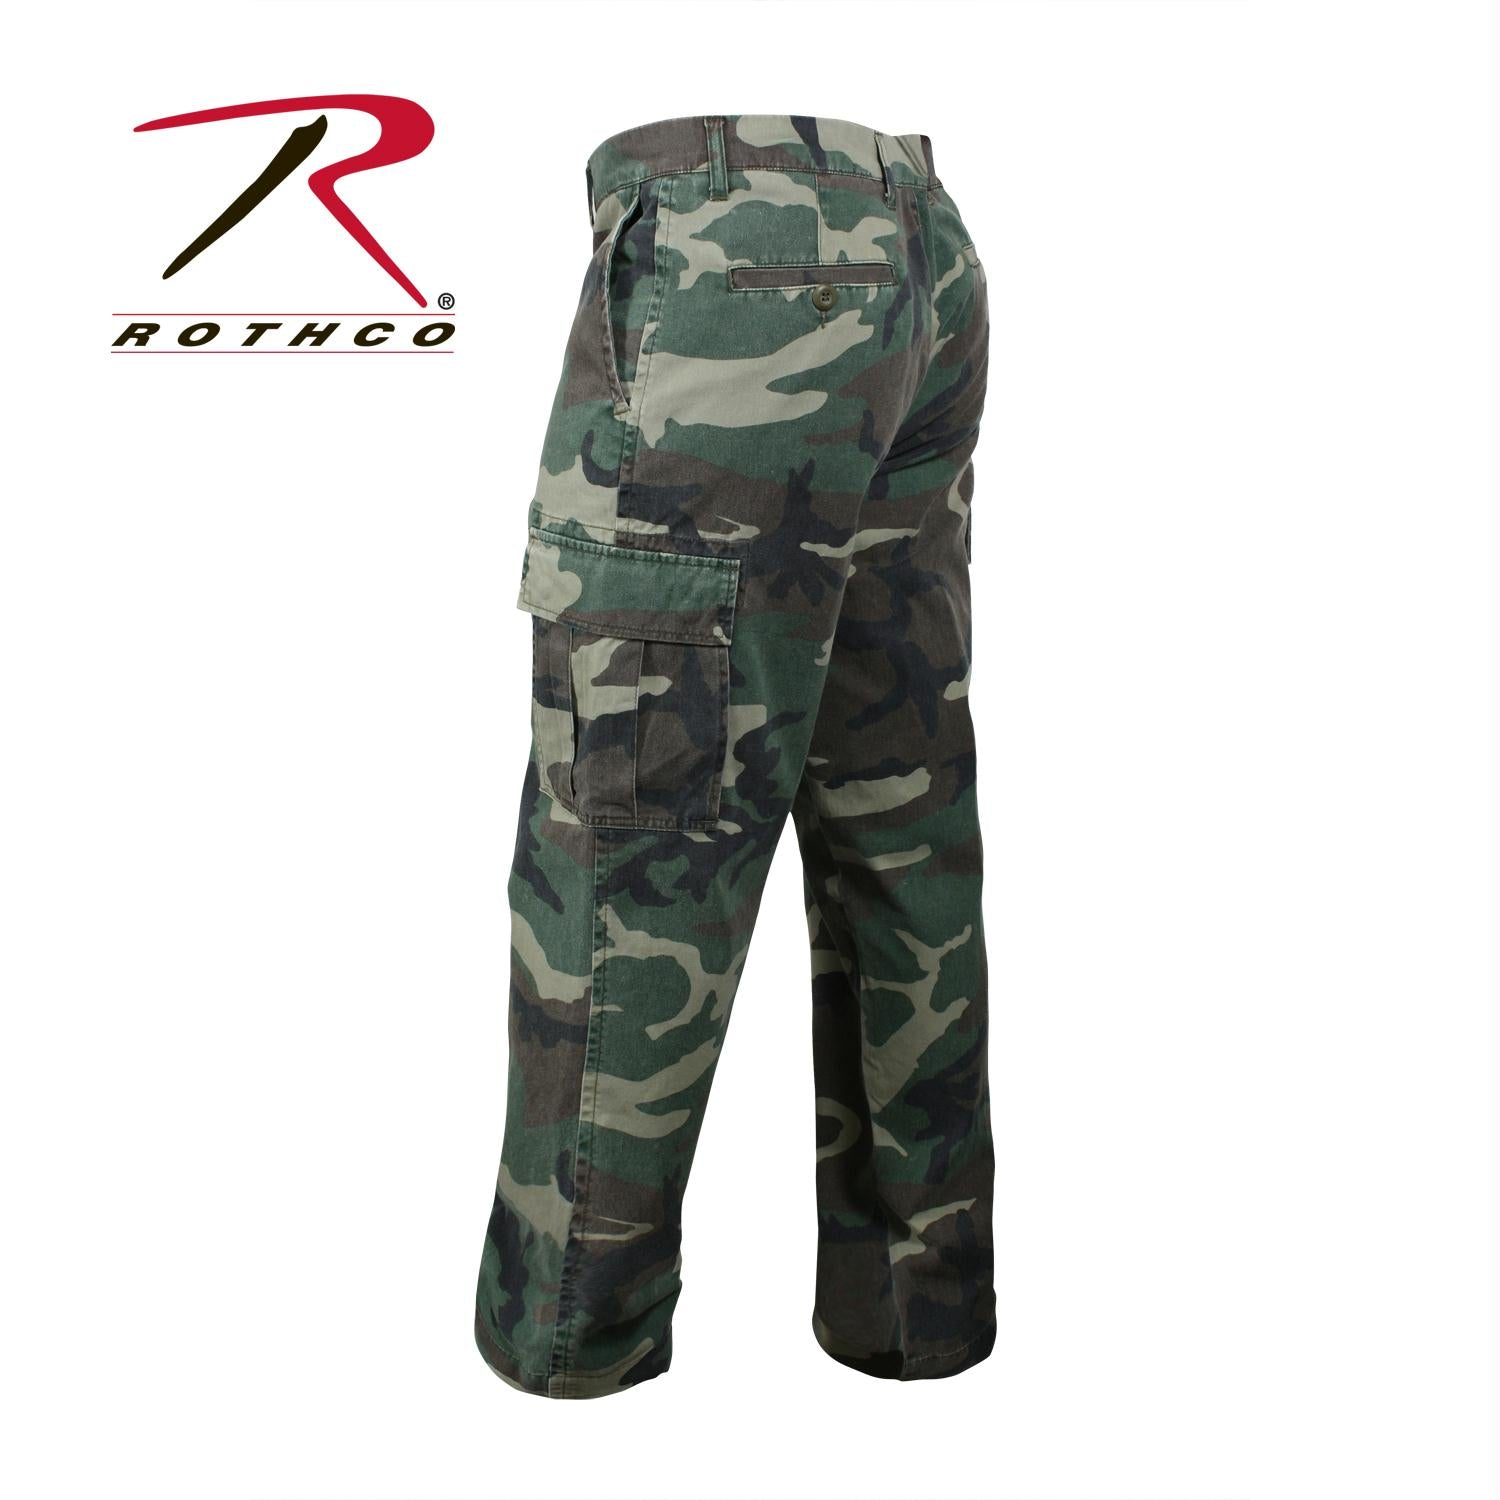 Rothco Vintage 6-Pocket Flat Front Fatigue Pants - Woodland Camo / 36